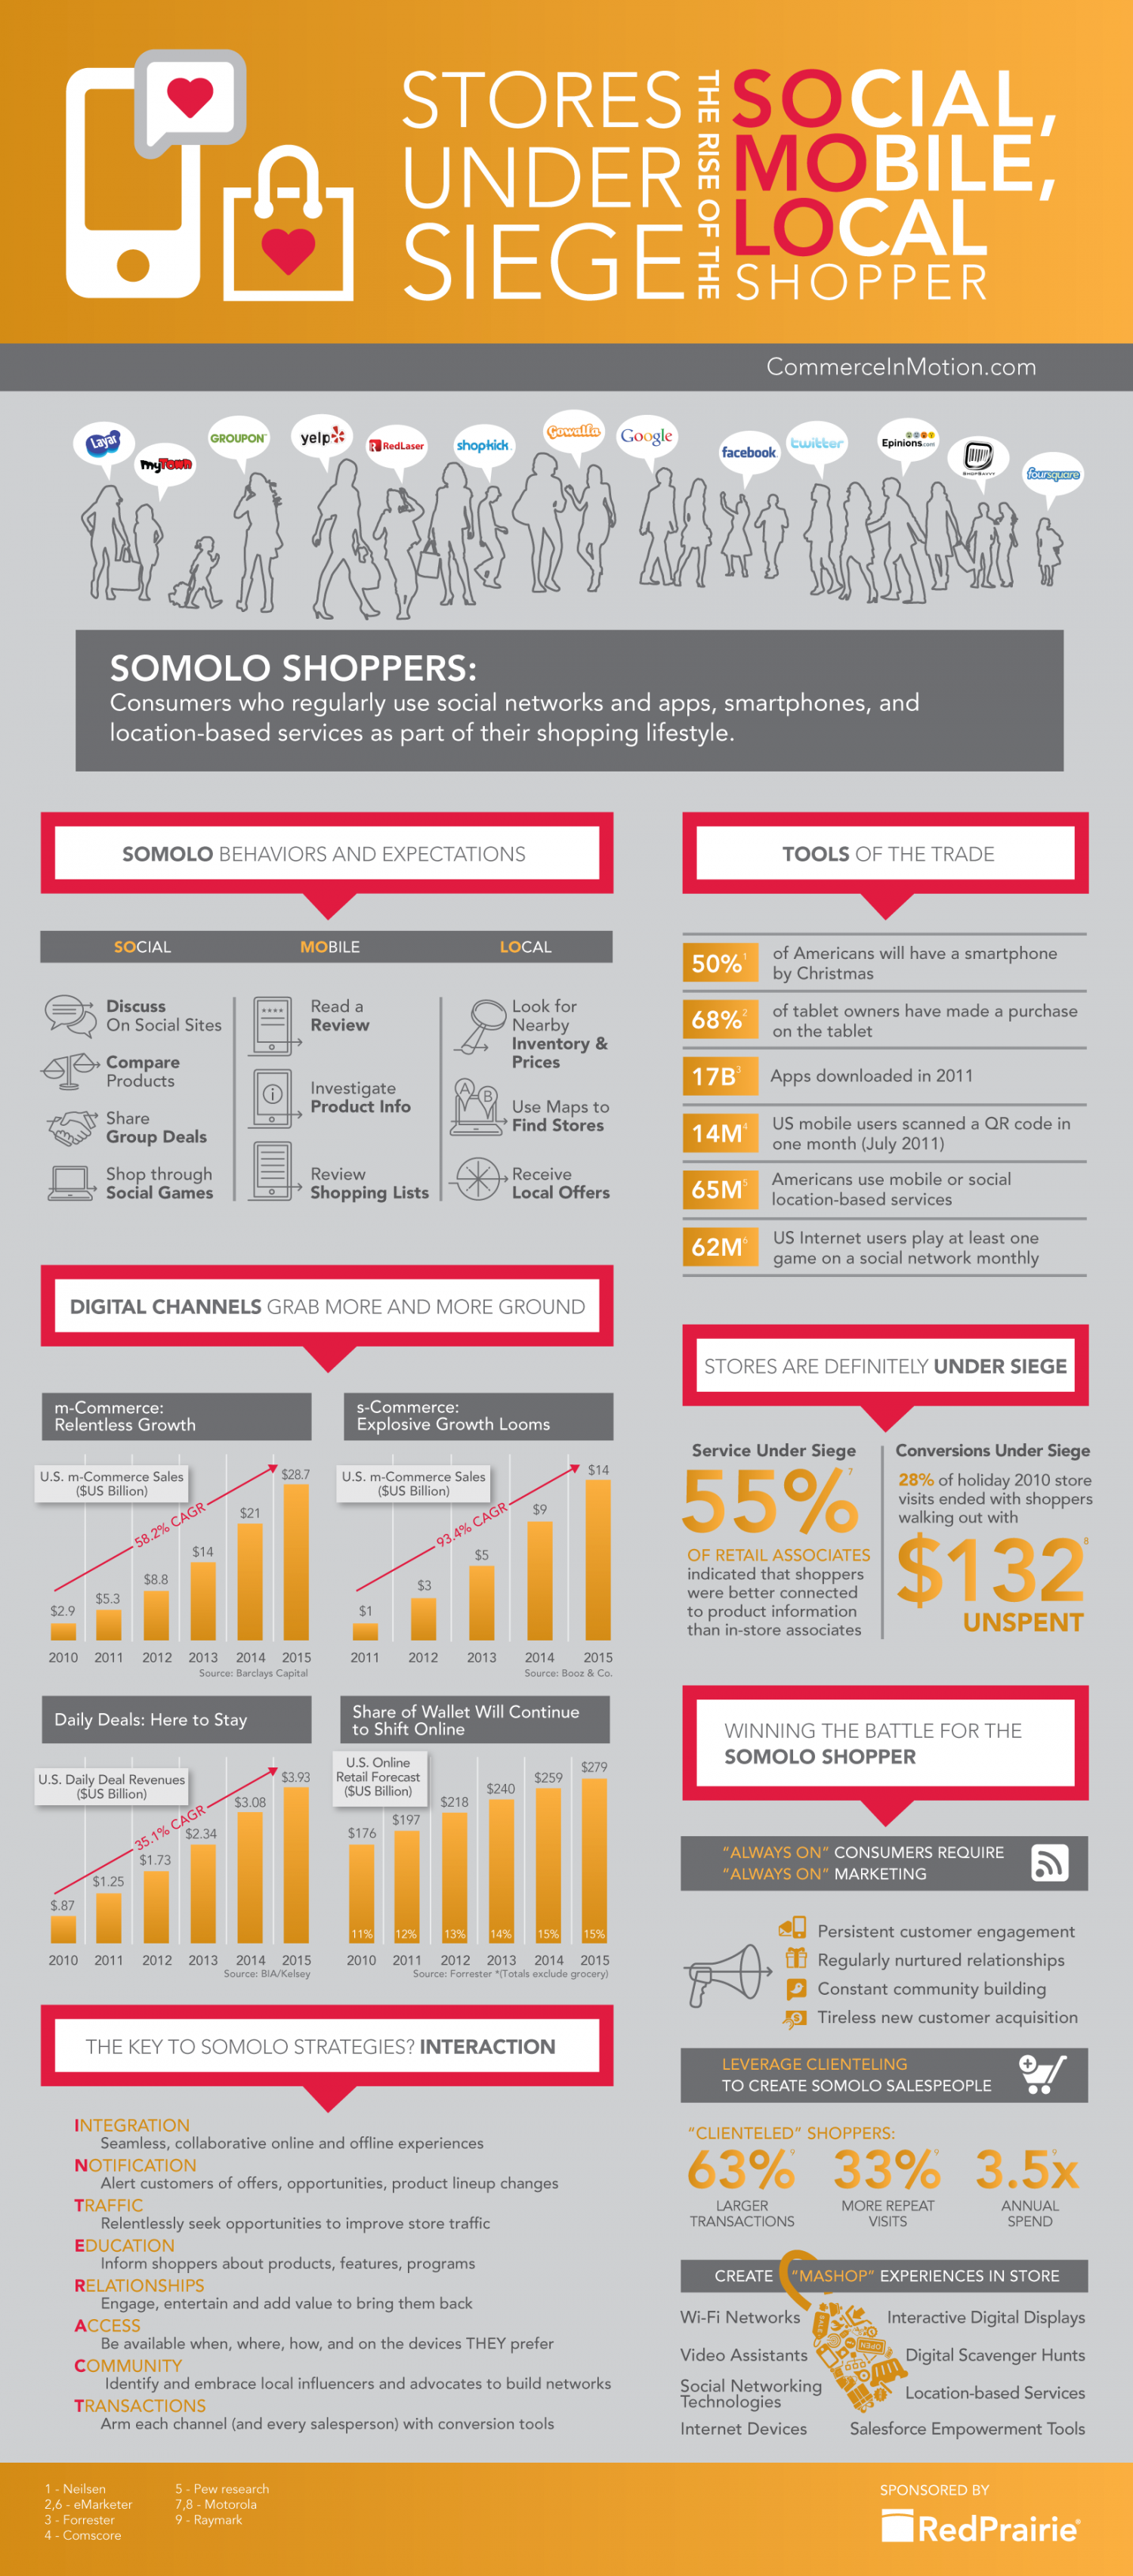 The Rise of the SoMoLo Shopper Infographic